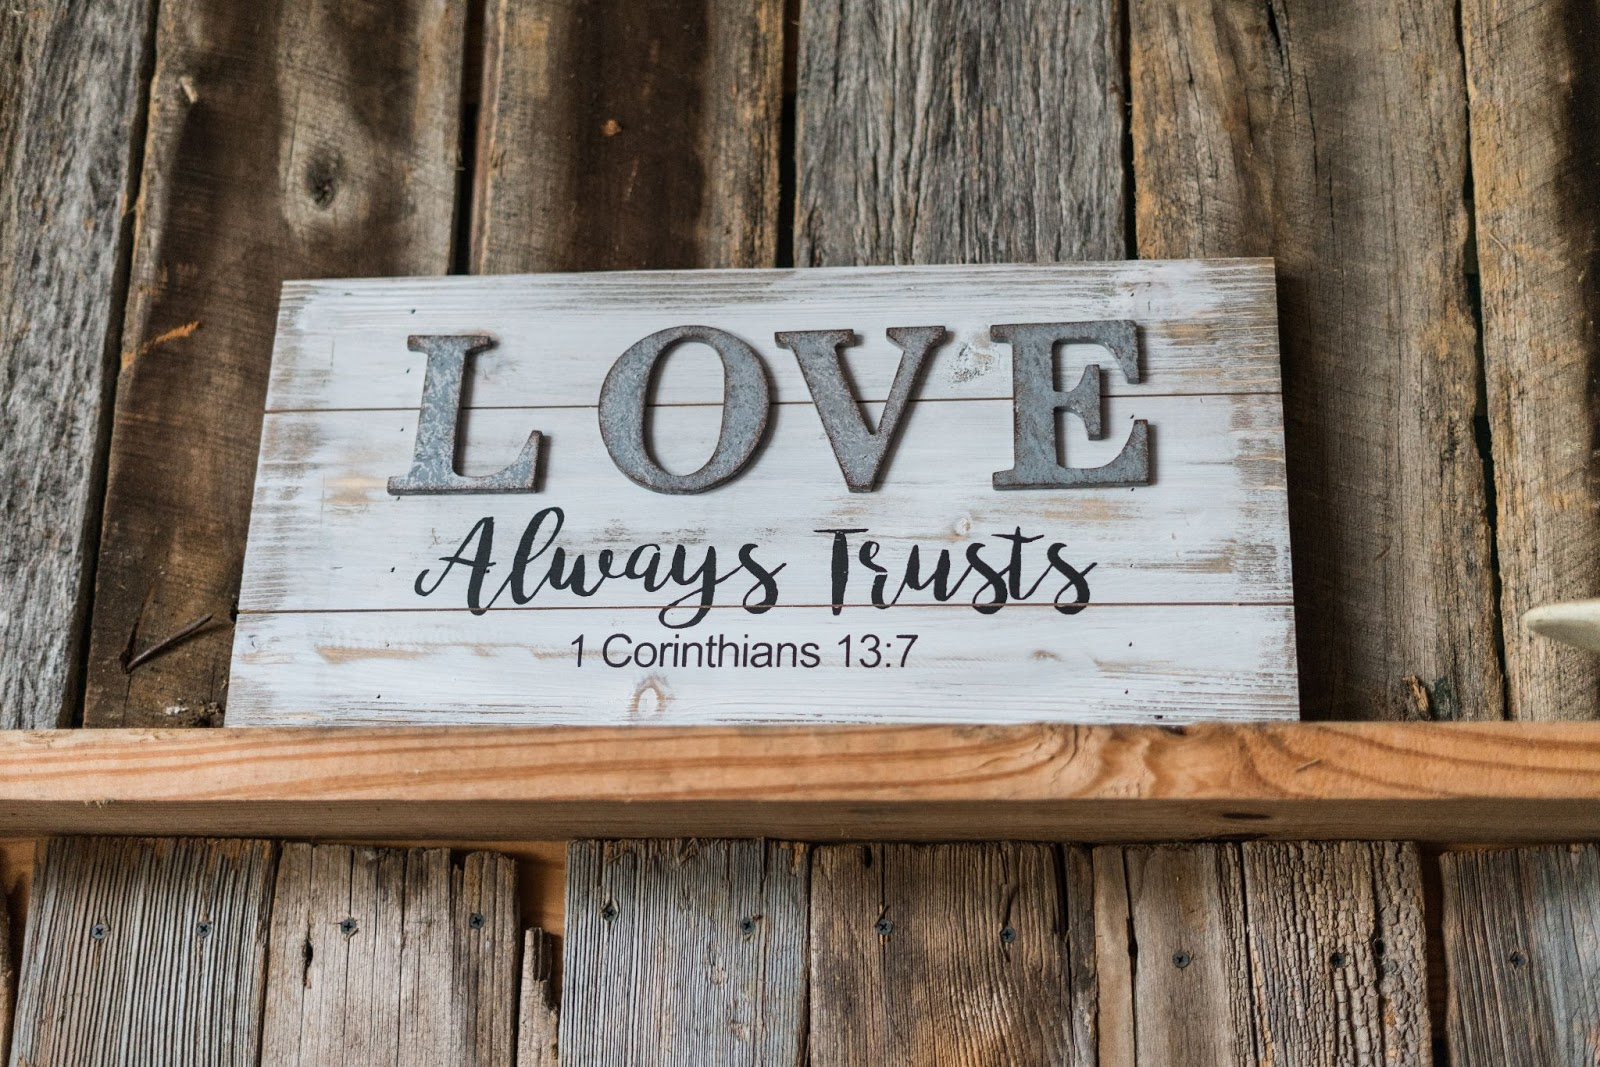 A Bible verse from 1 Corinthians 13:7 displayed in the home